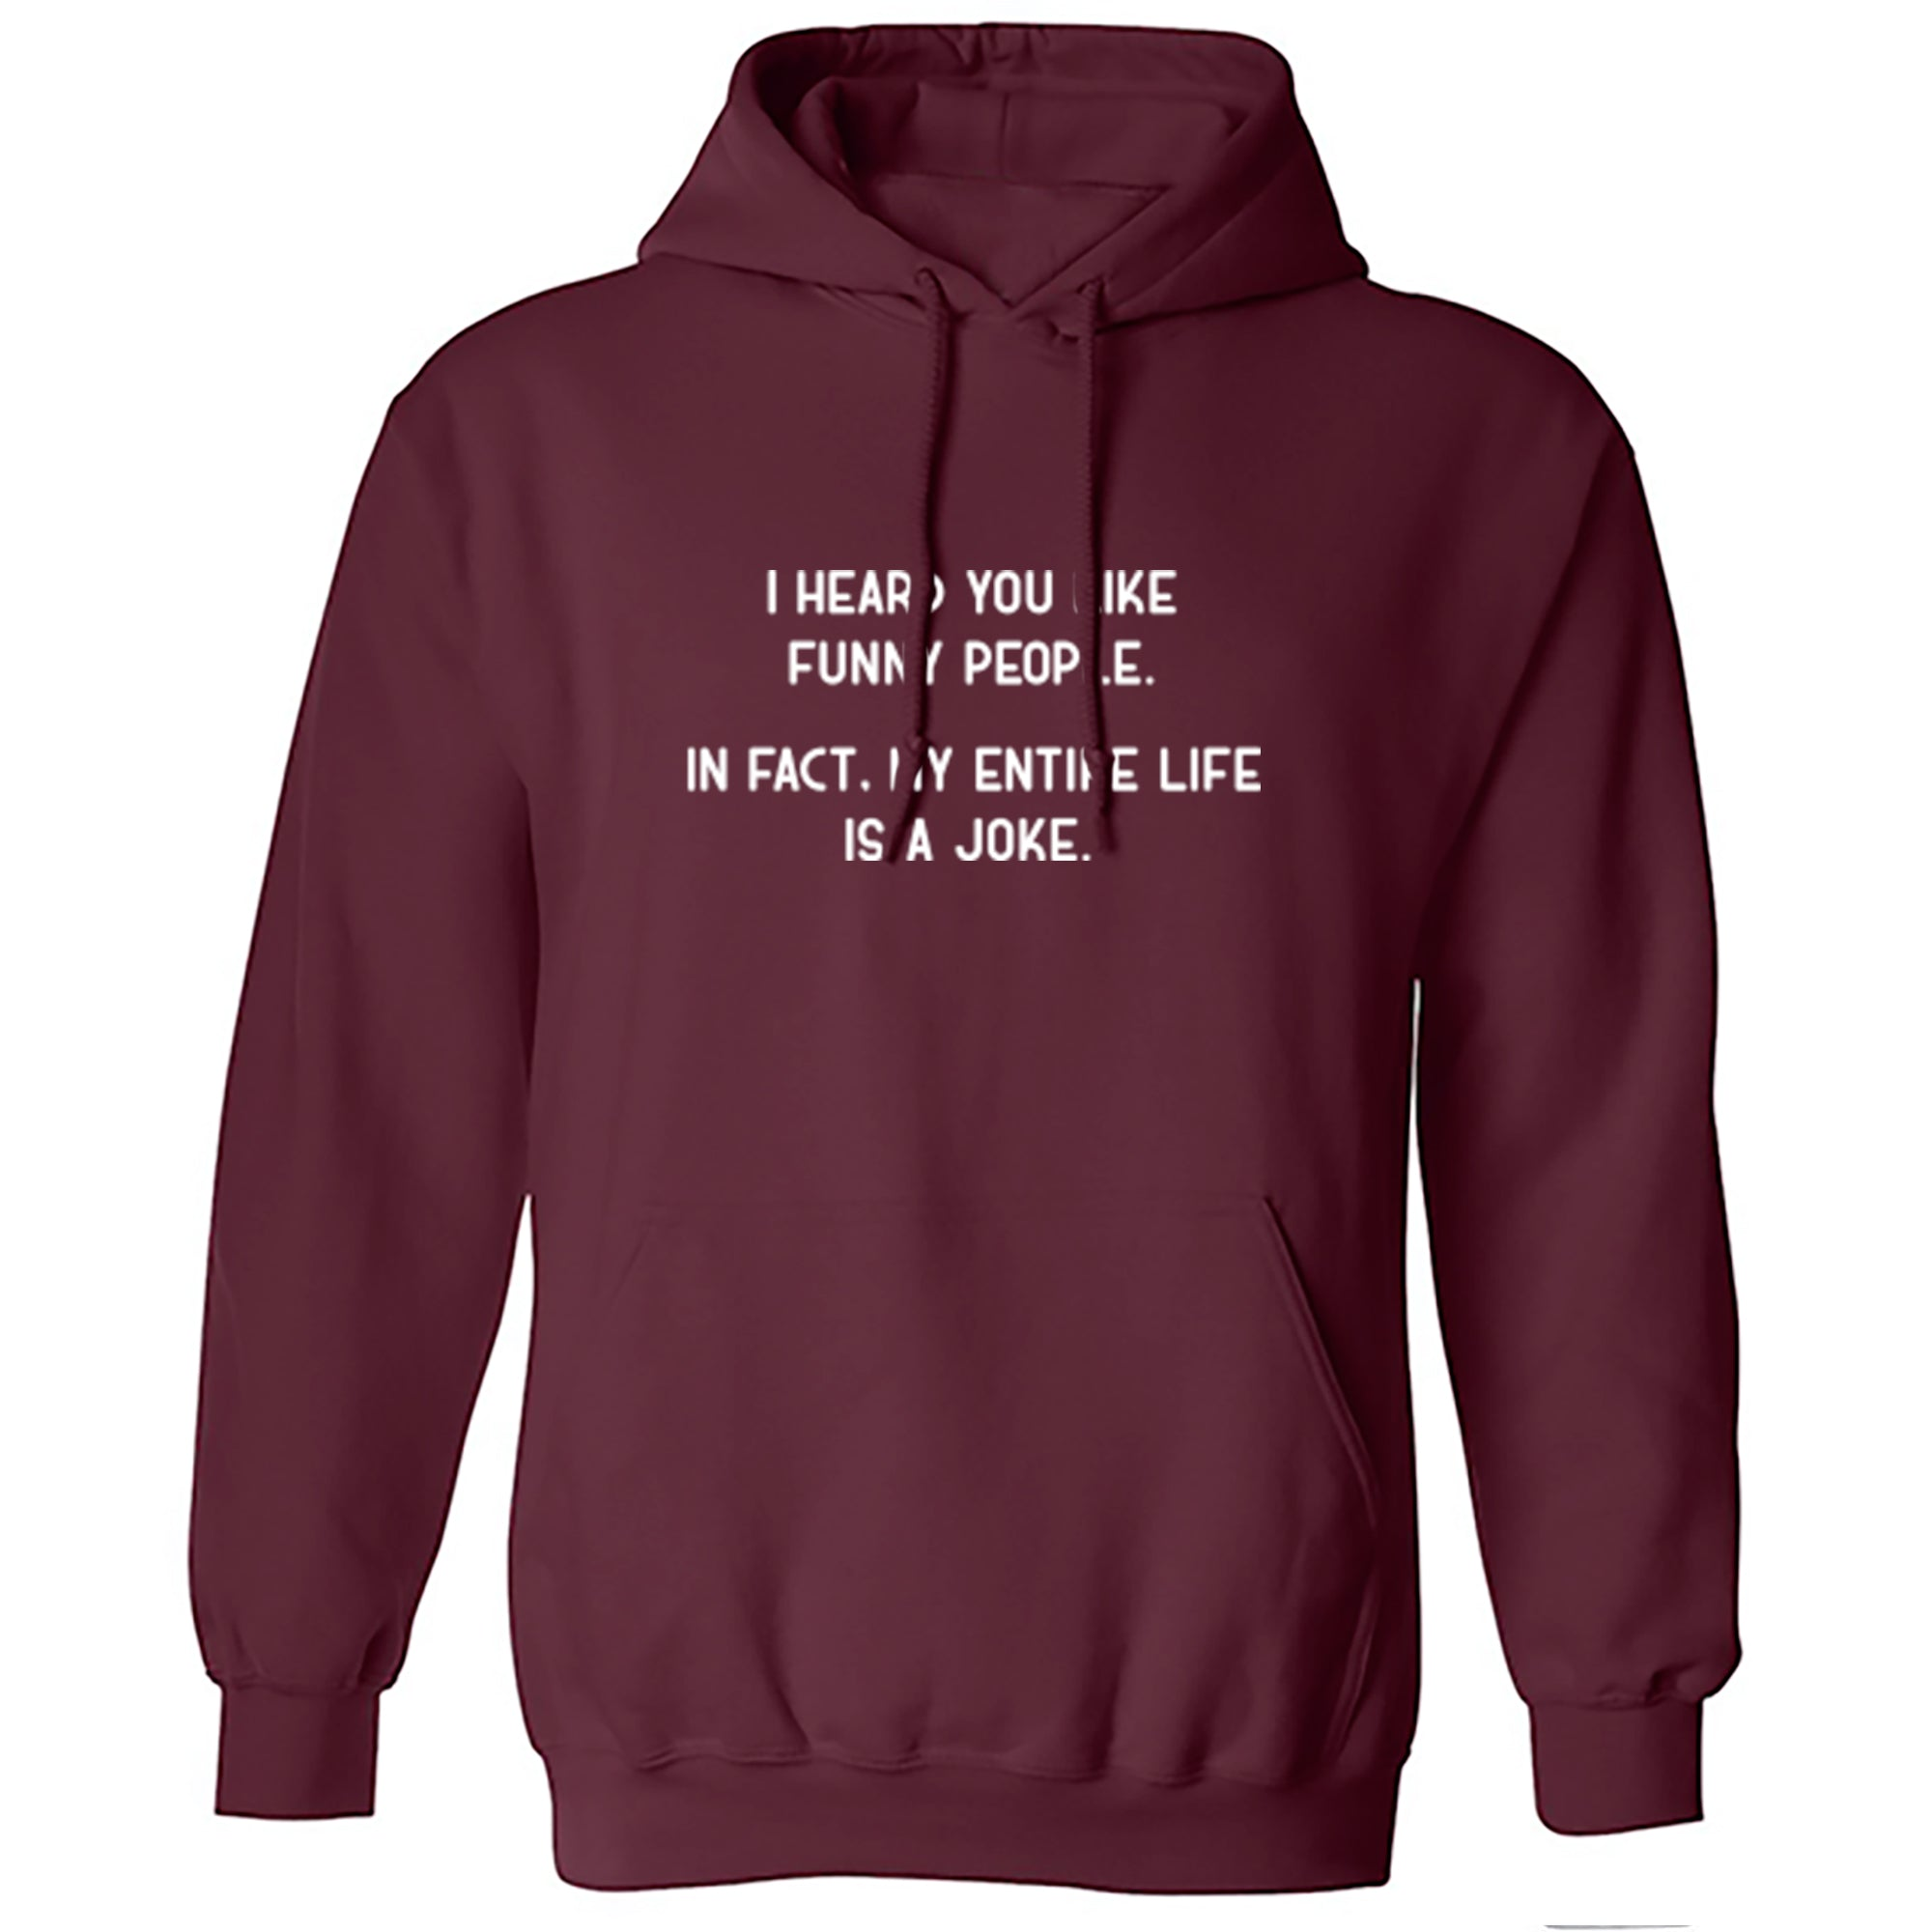 I Heard You Like Funny People. In Fact, My Entire Life Is A Joke Unisex Hoodie S1120 - Illustrated Identity Ltd.